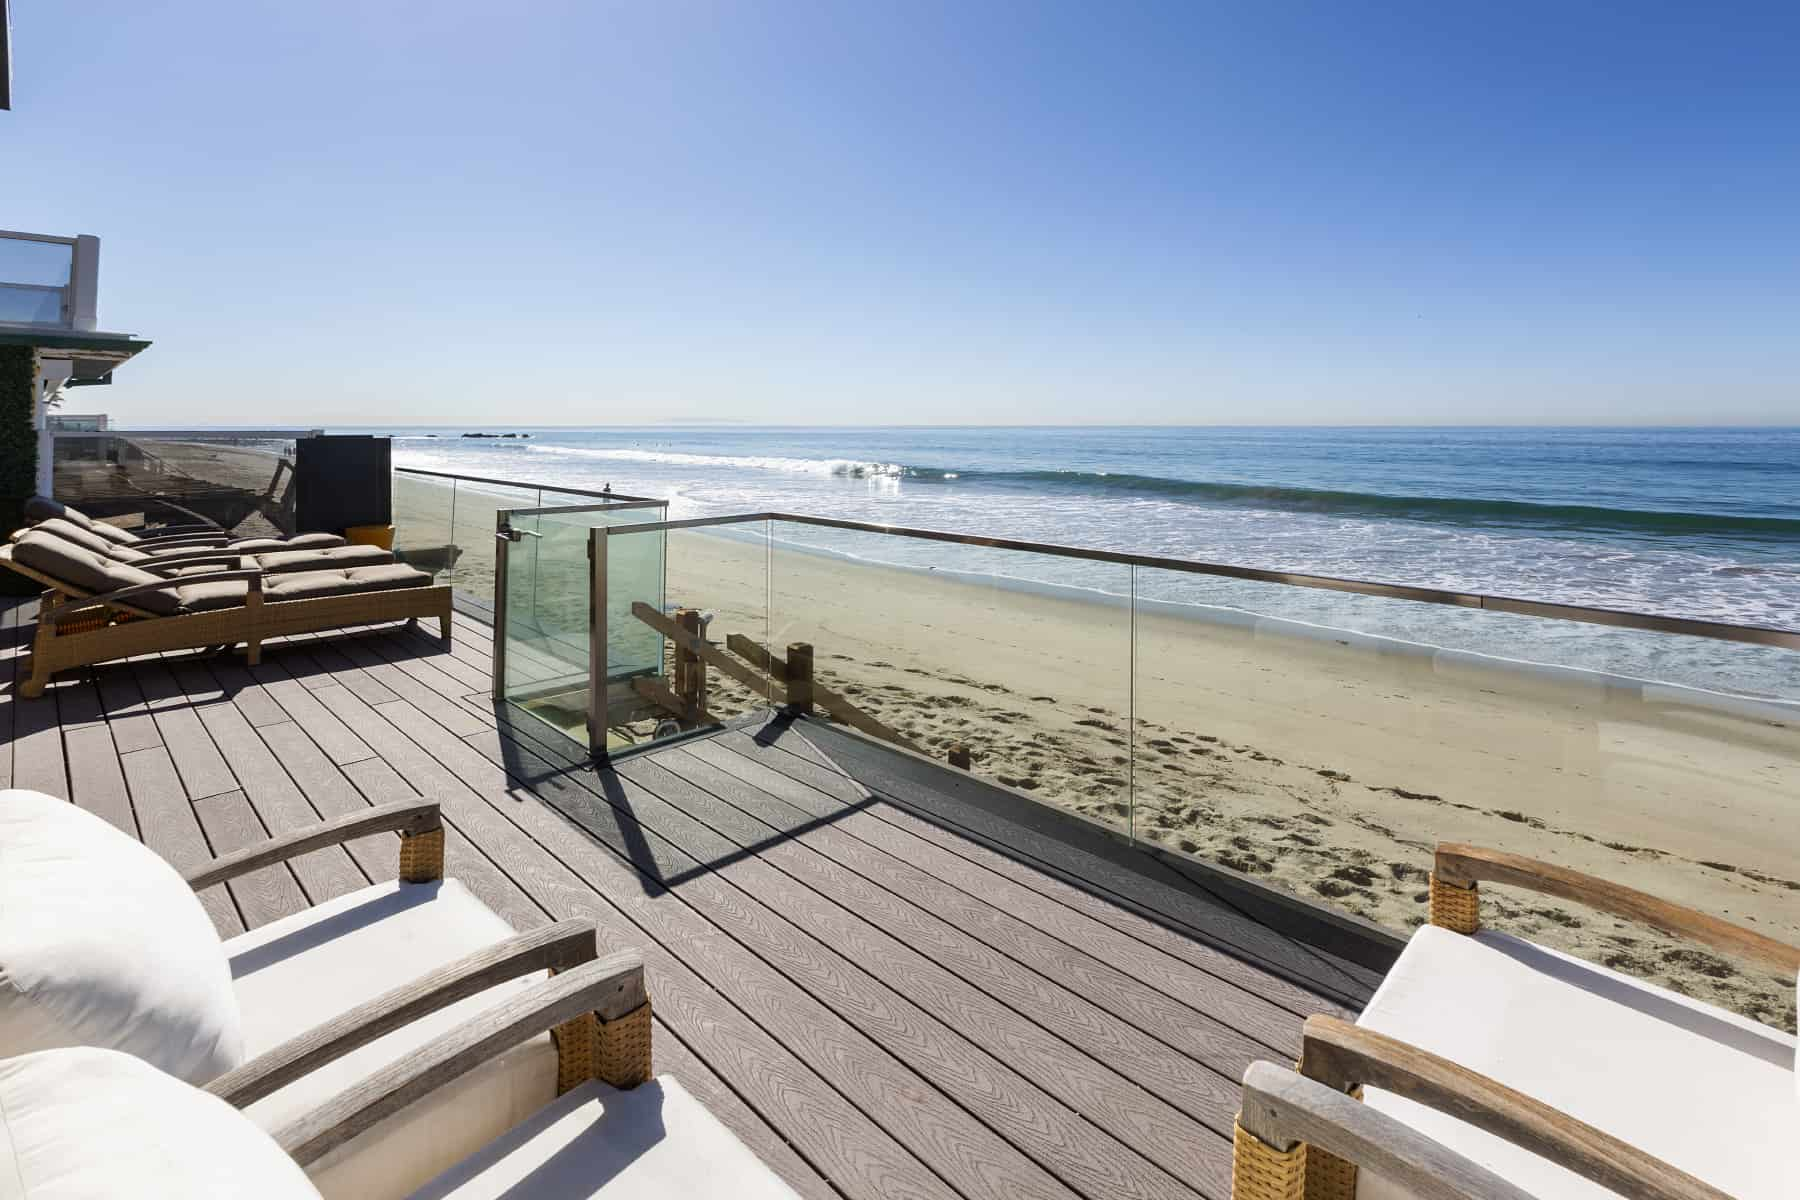 Eclectic Modern Beach House: a Fantastic Example of Mix and Match ...